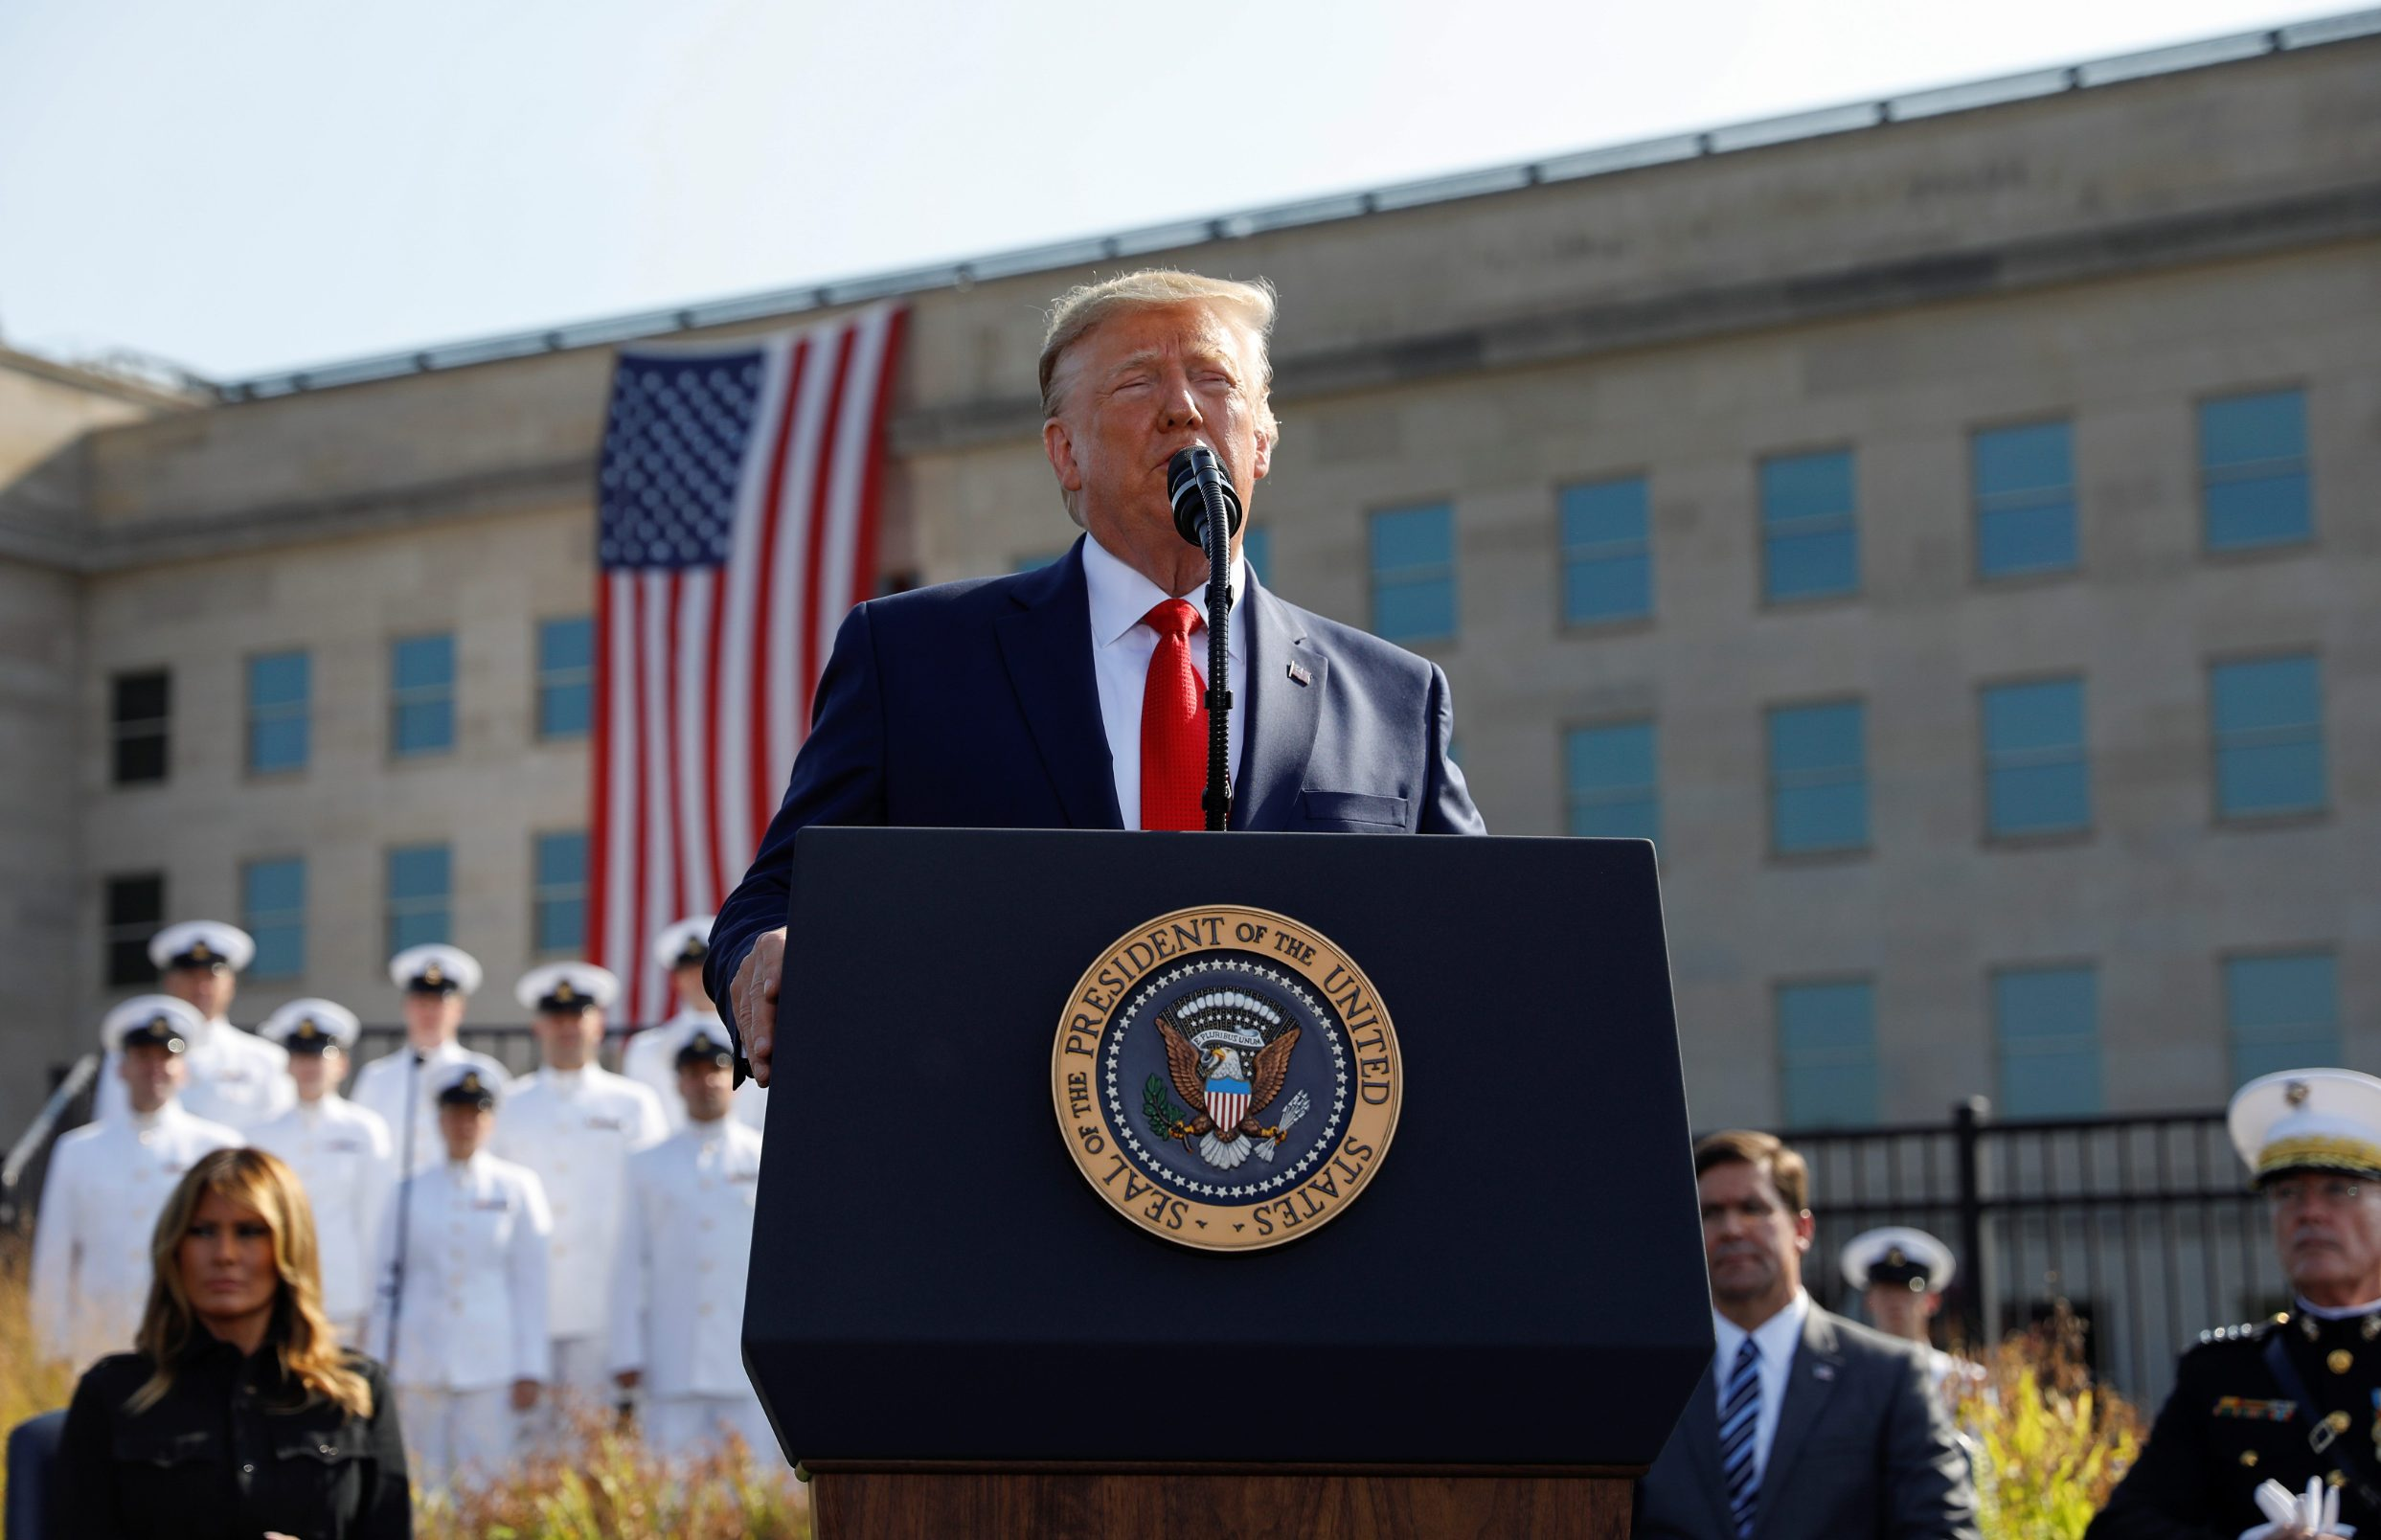 U.S. President Donald Trump speaks next to first lady Melania Trump and Defense Secretary Mark Esper during a ceremony marking the 18th anniversary of September 11 attacks at the Pentagon in Arlington, Virginia, U.S., September 11, 2019. REUTERS/Kevin Lamarque